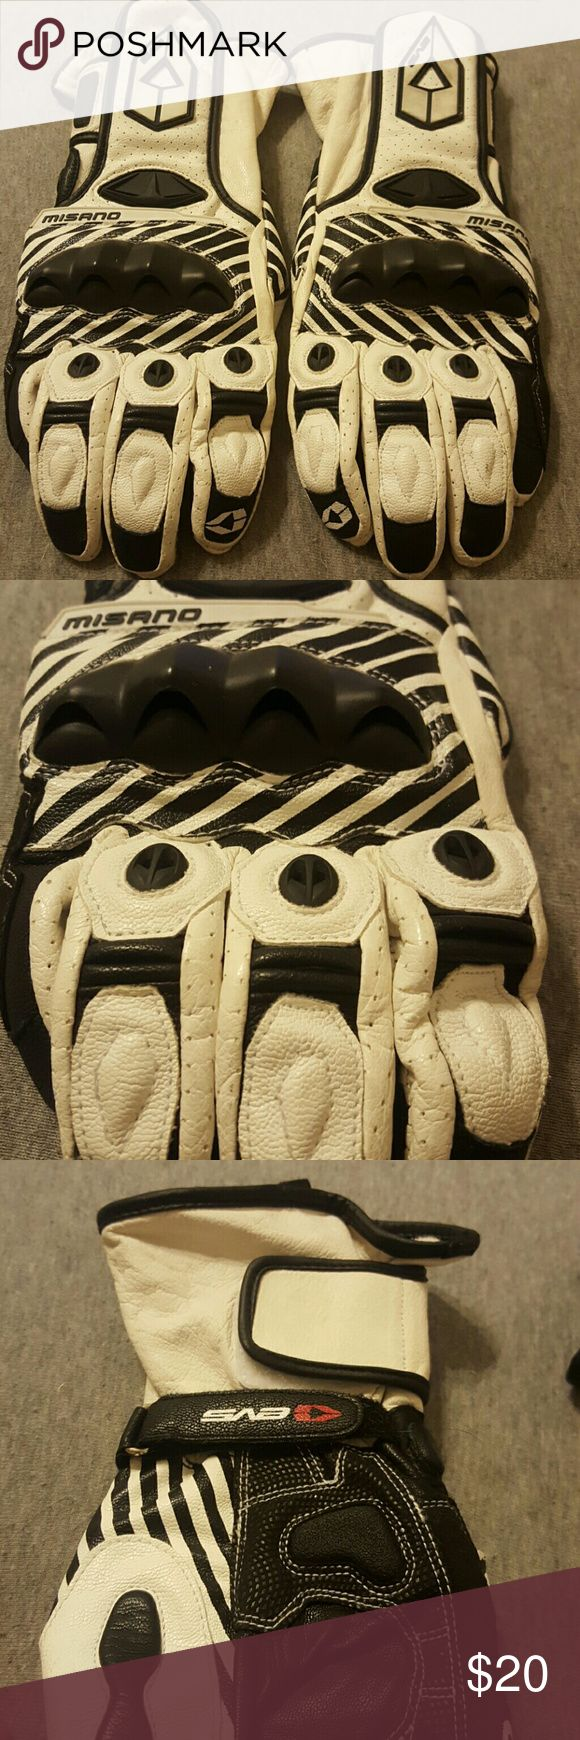 Womens leather motorcycle riding gloves - Motorcycle Gauntlet Riding Gloves Gently Loved Motorcycle Riding Gloves These Were Worn For About A